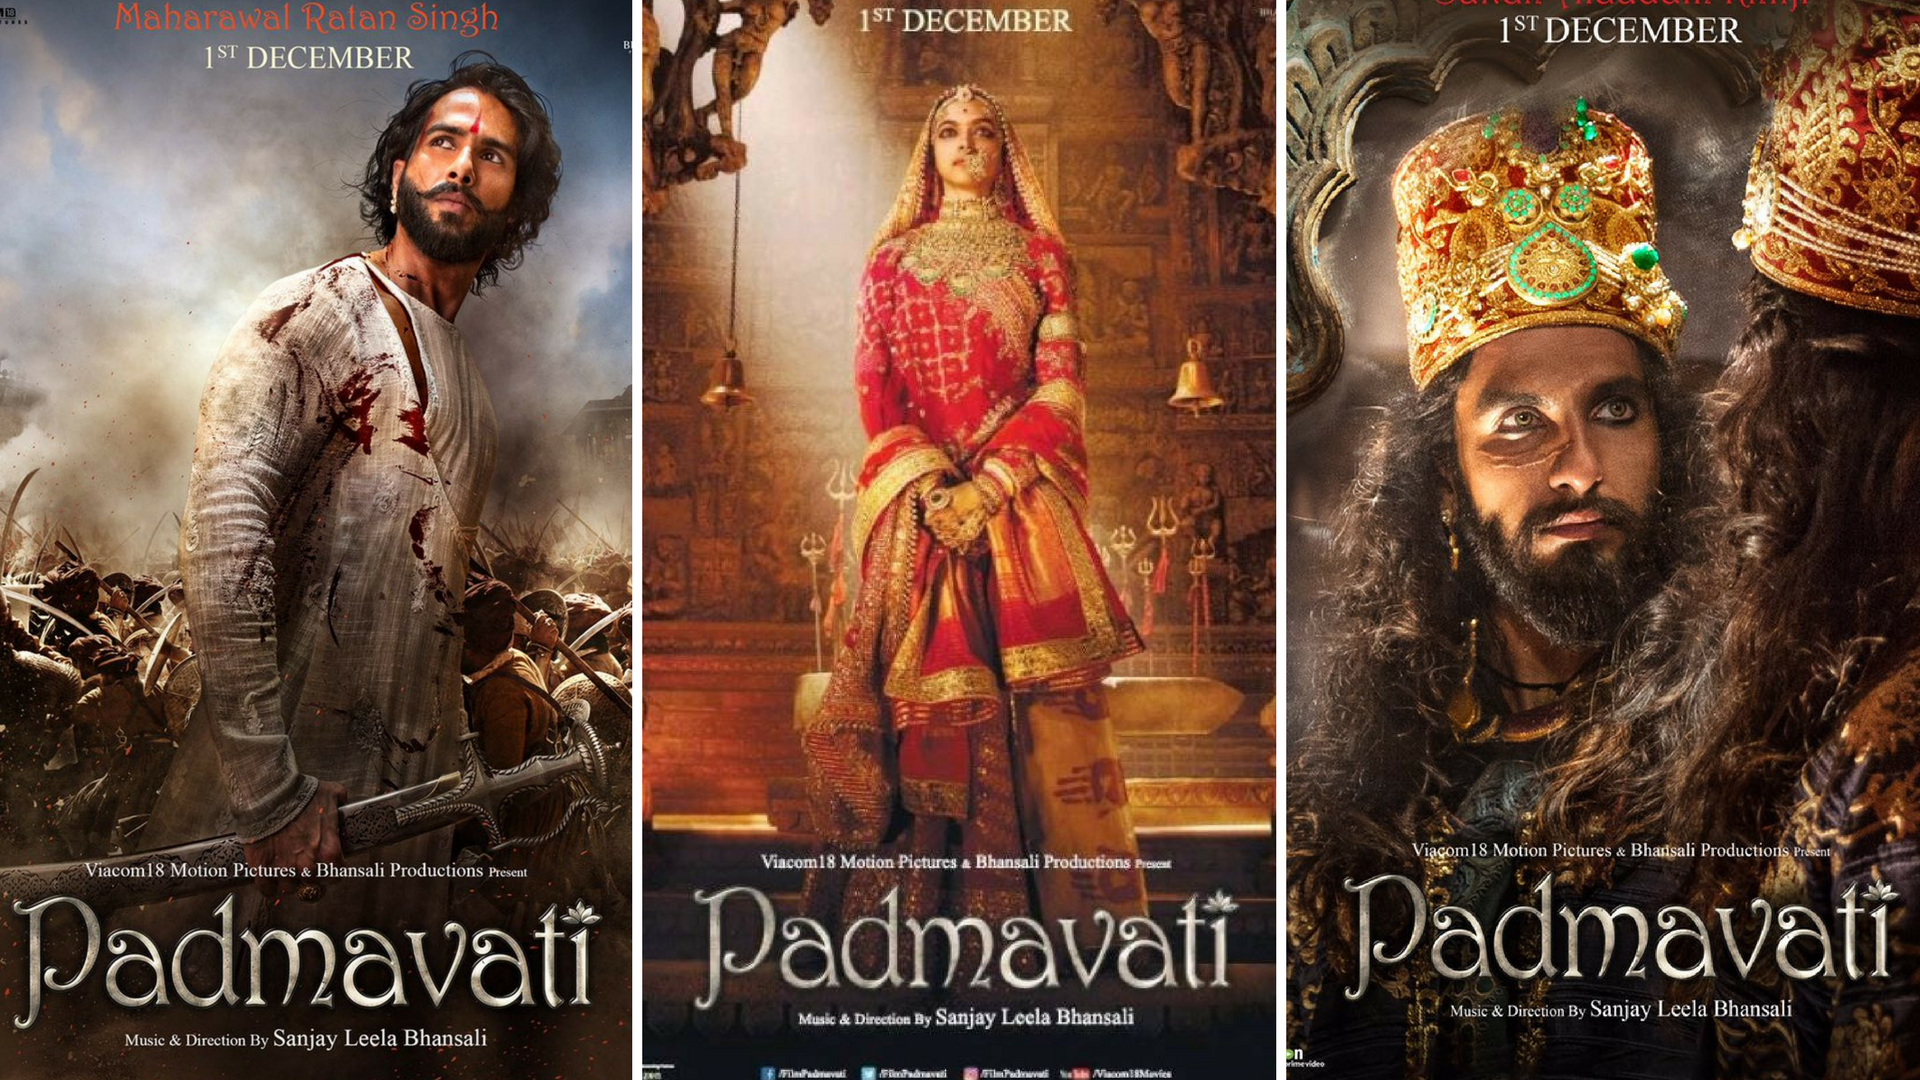 Padmavati Full Movie Watch On Youtube Quirkybyte